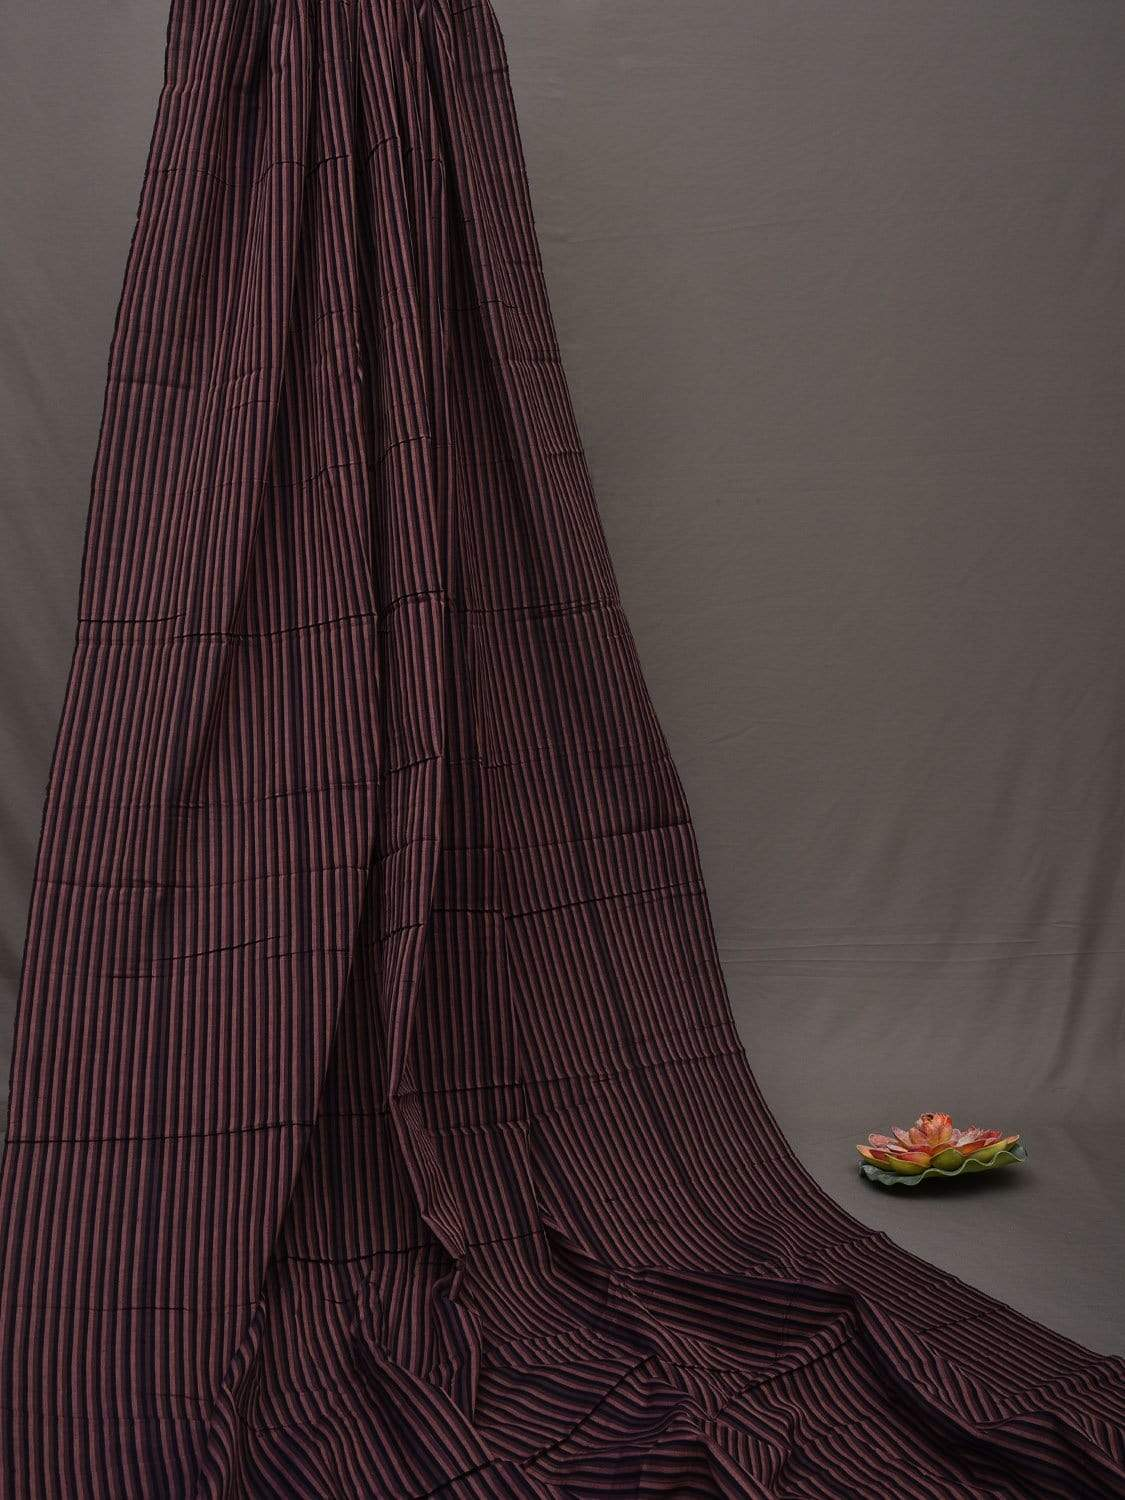 Brown and Black Khadi Cotton Handloom Fabric with Strips Design f0169